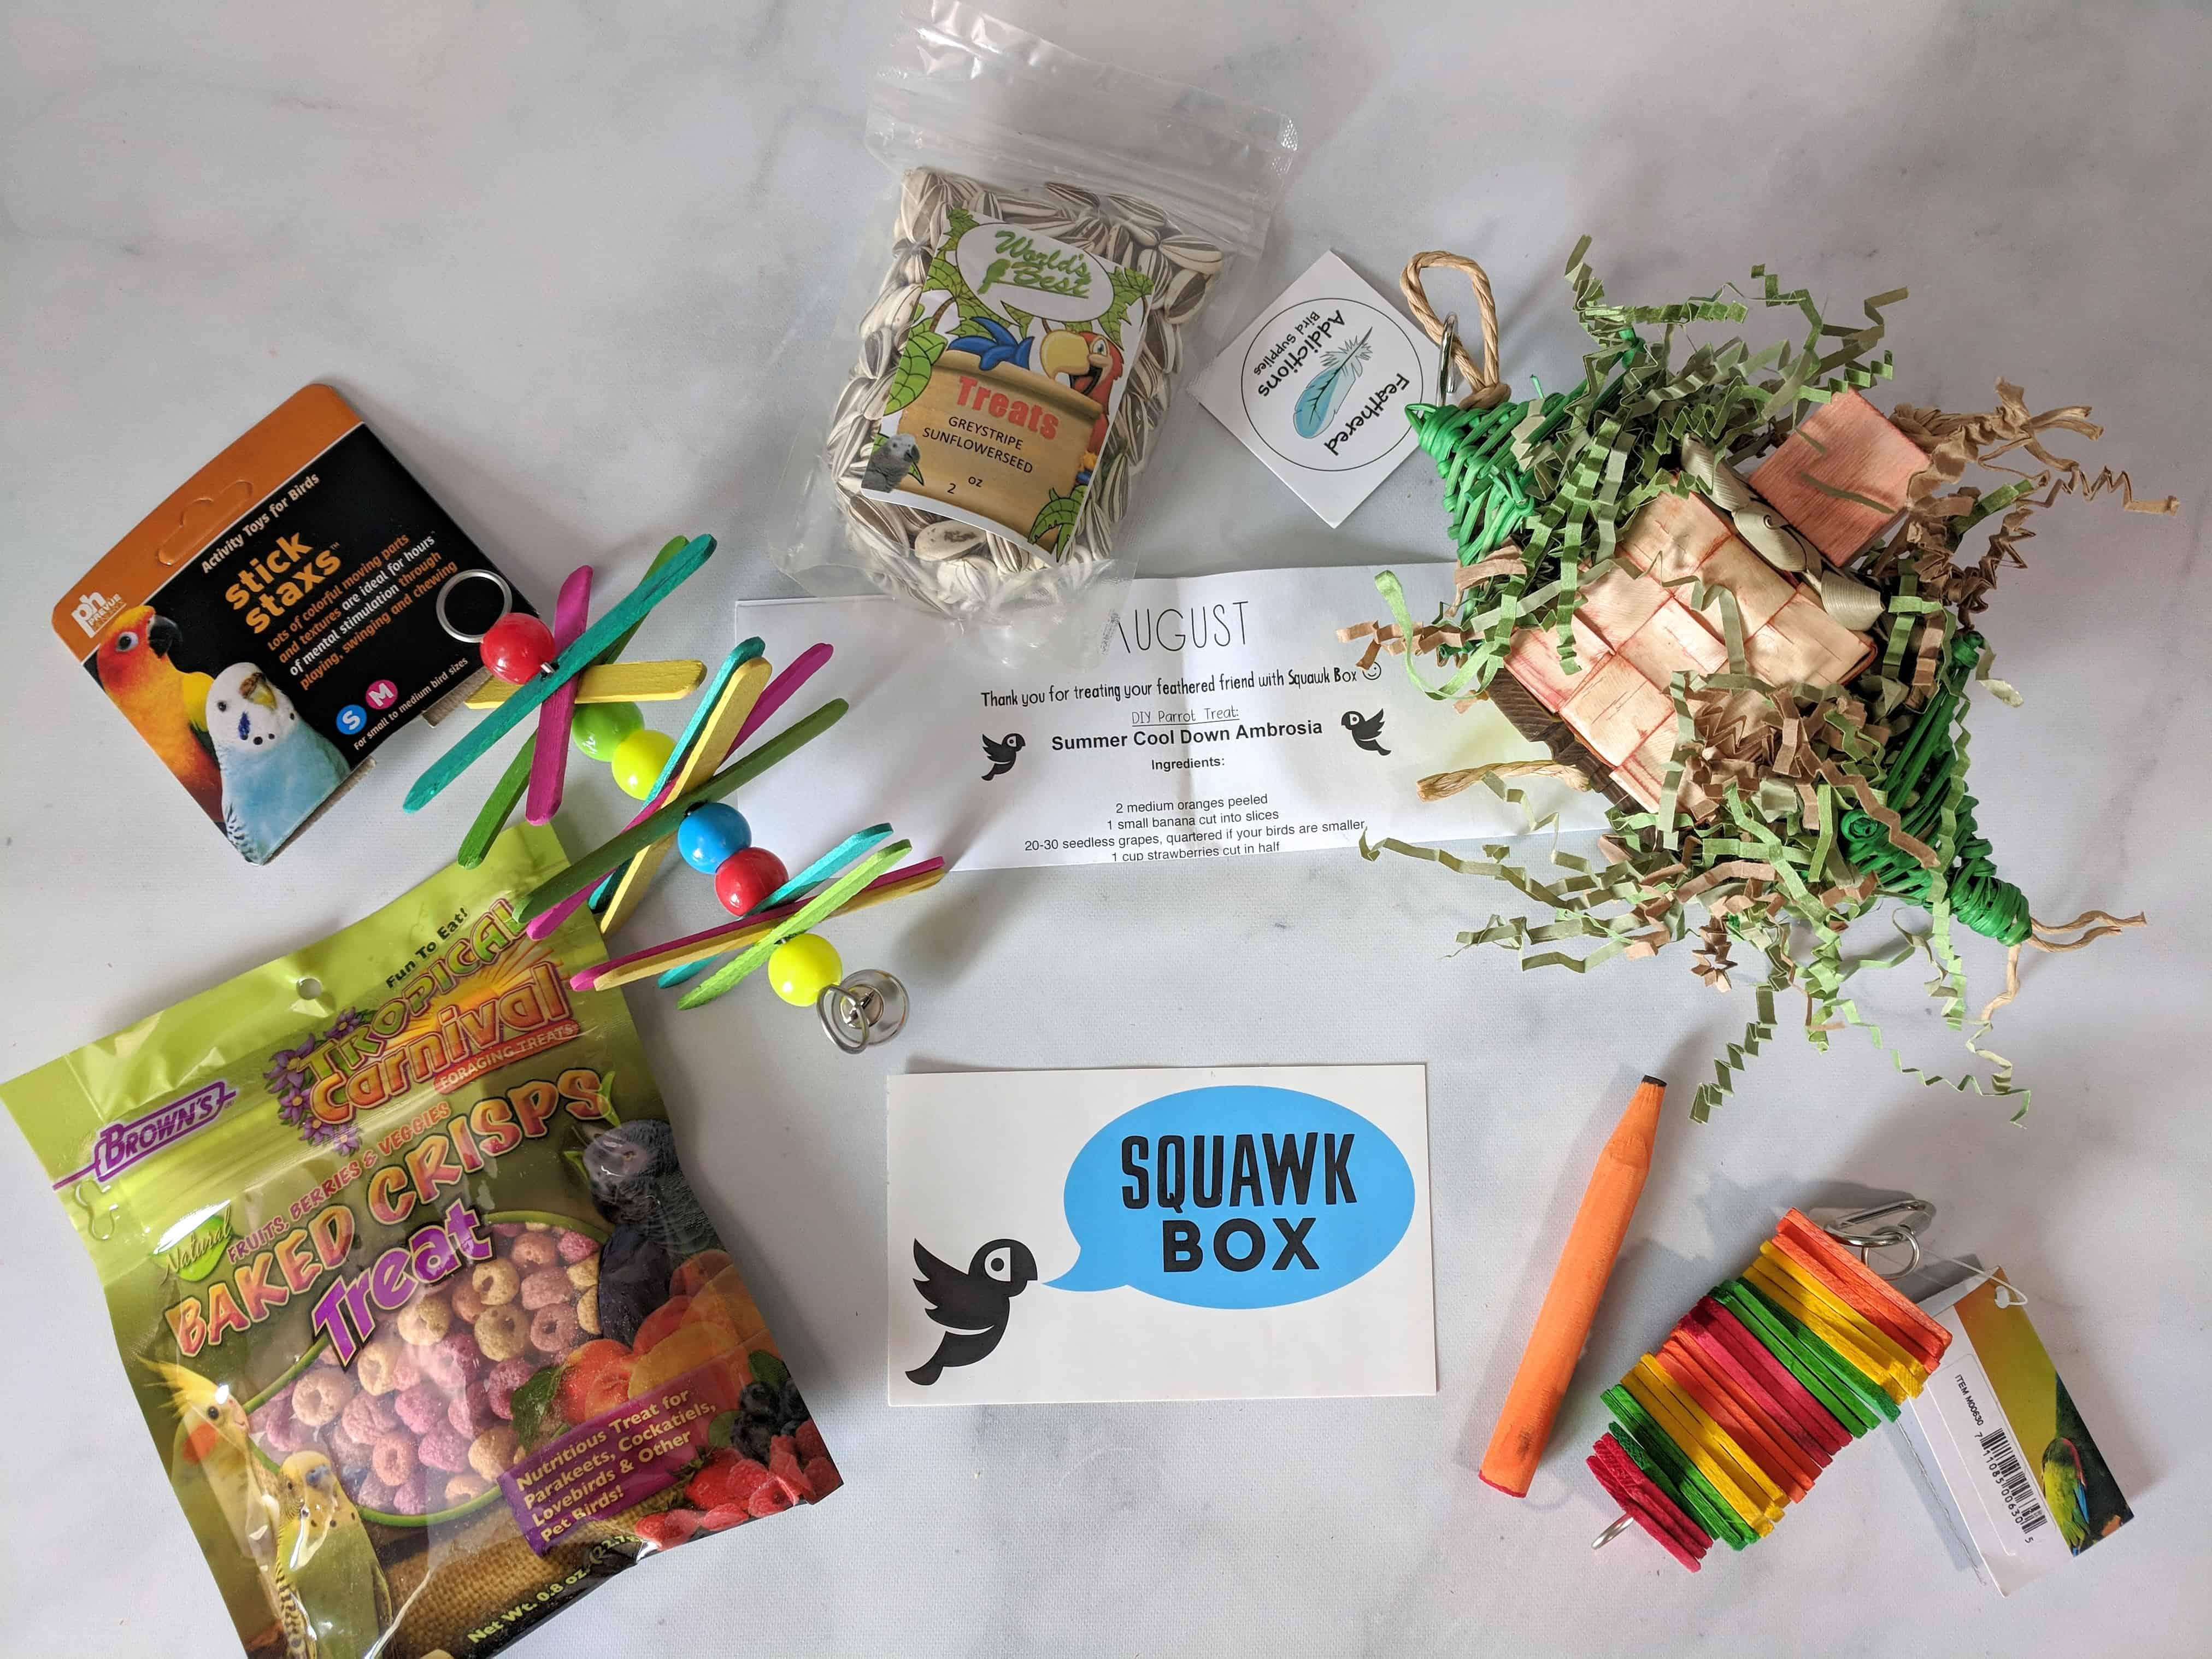 Squawk Box Subscription Review – August 2018